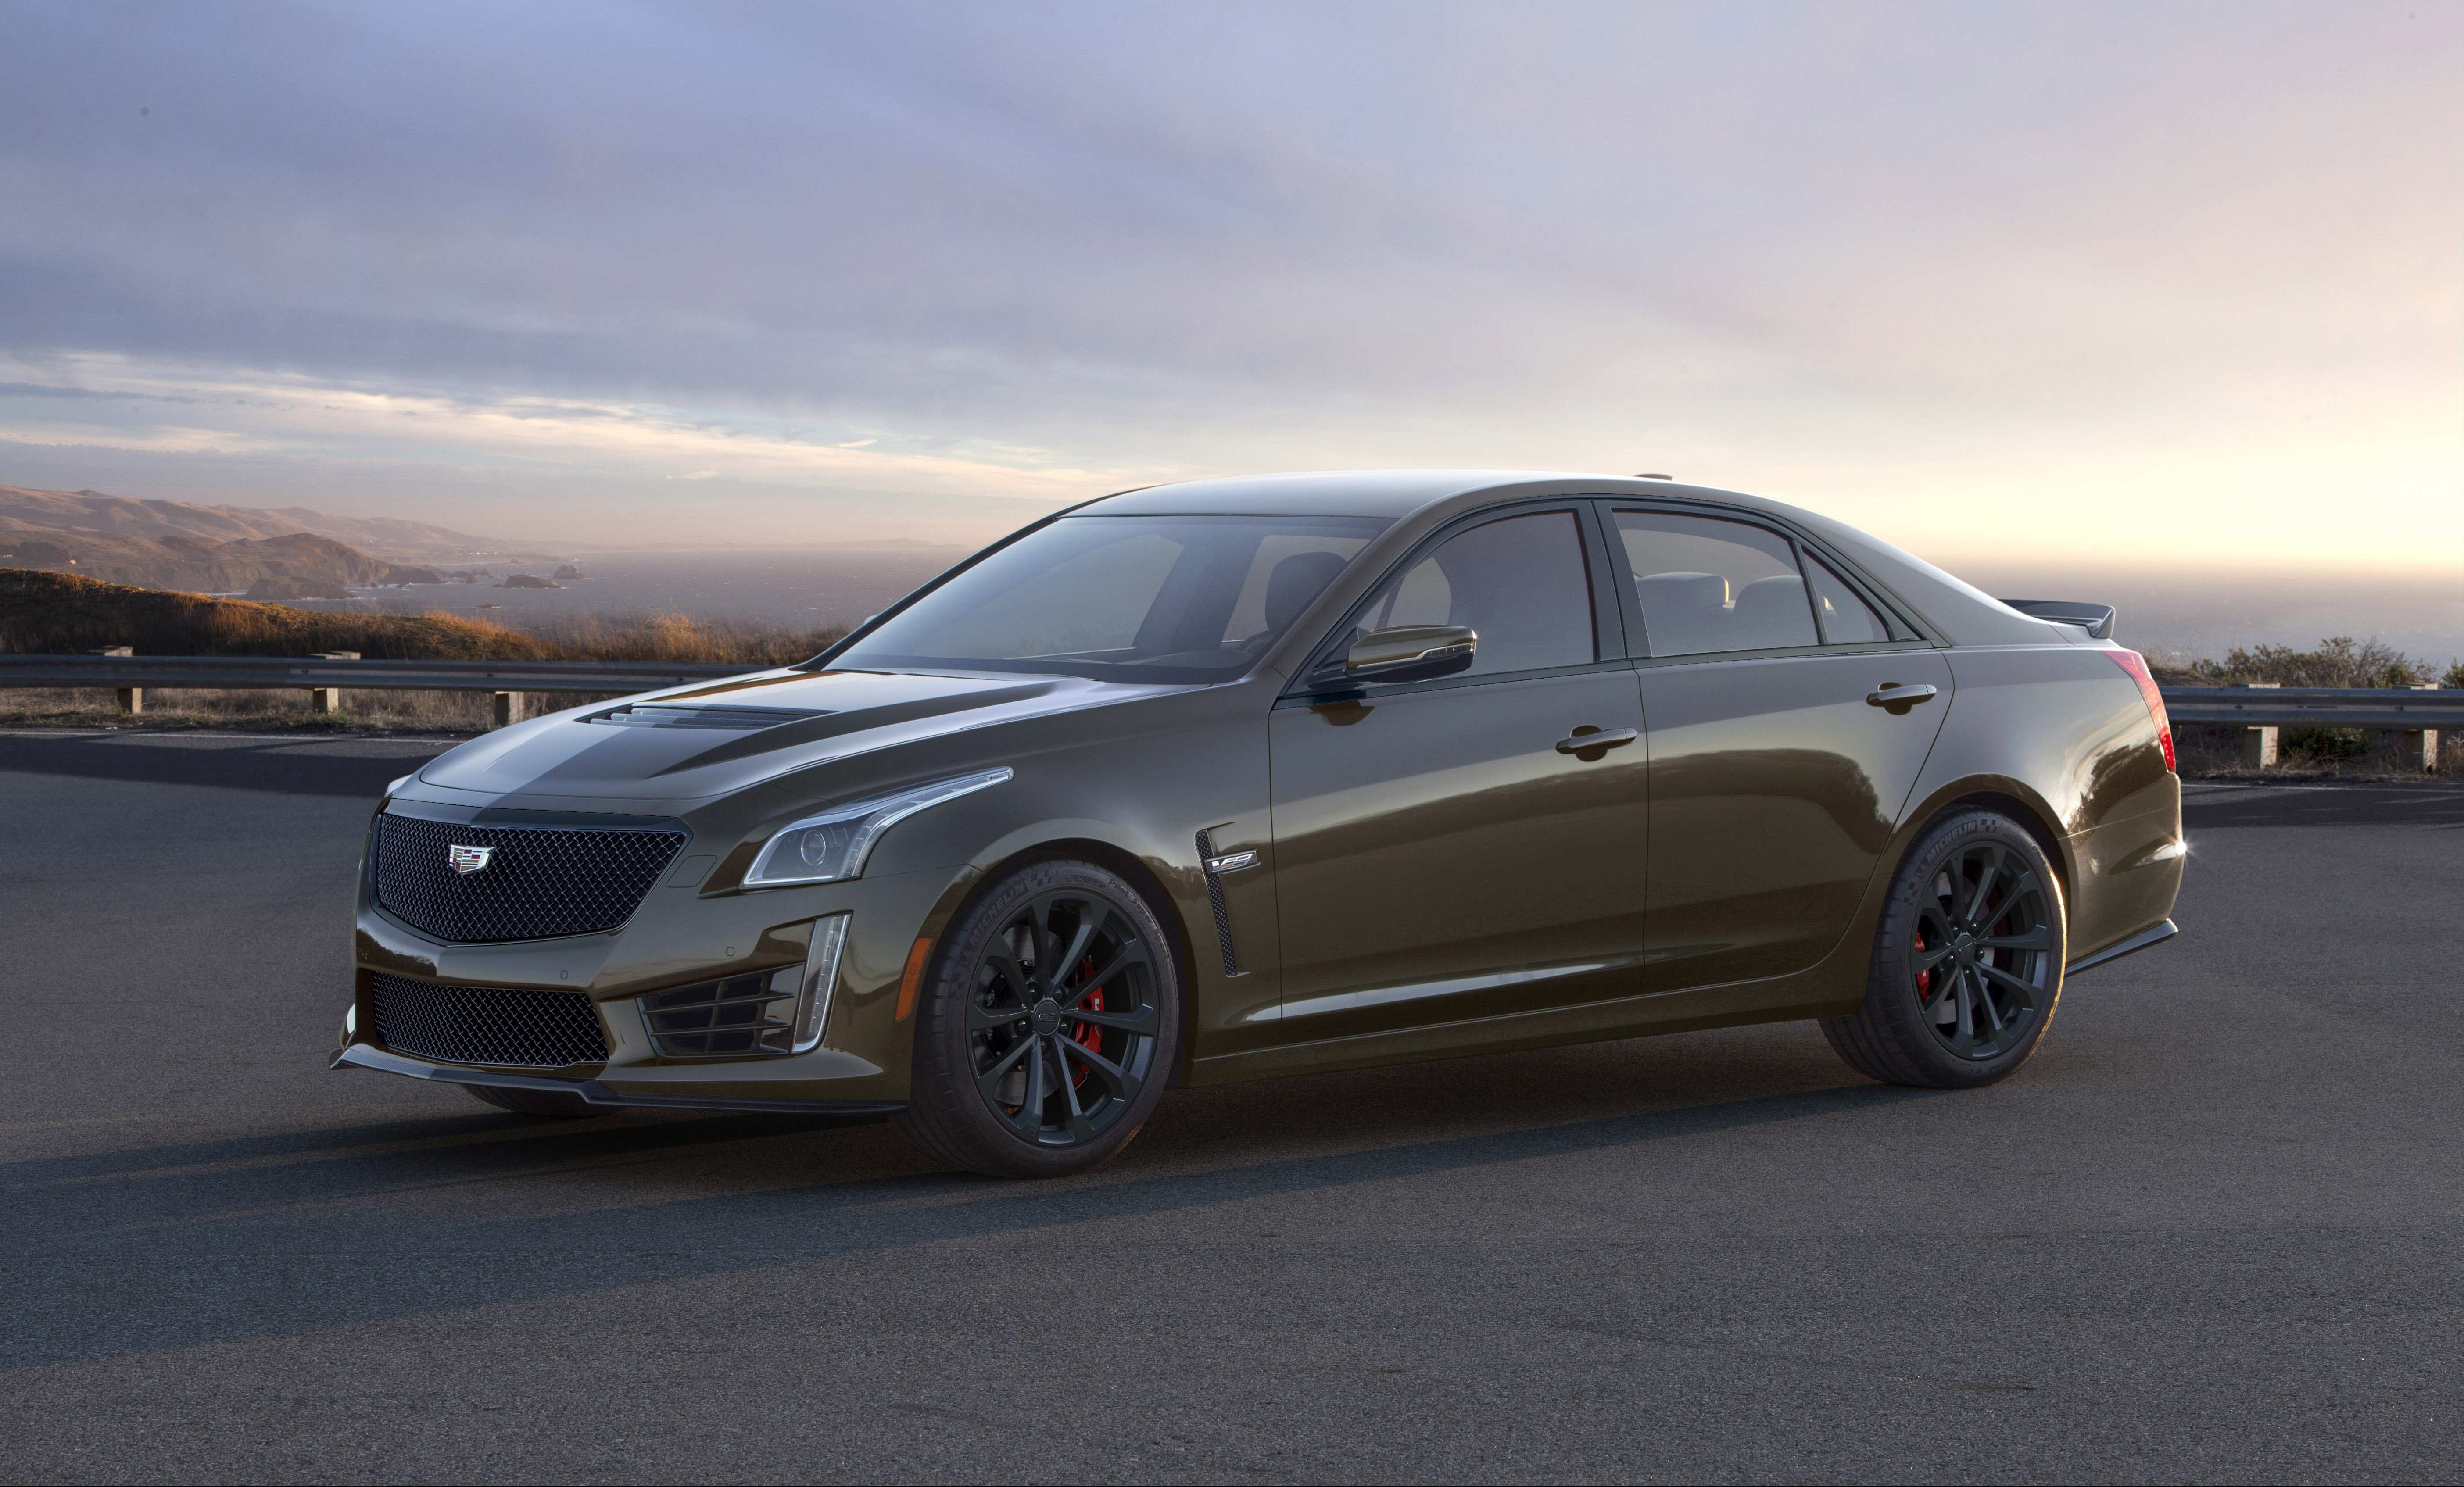 49 All New 2019 Cadillac News Price And Review